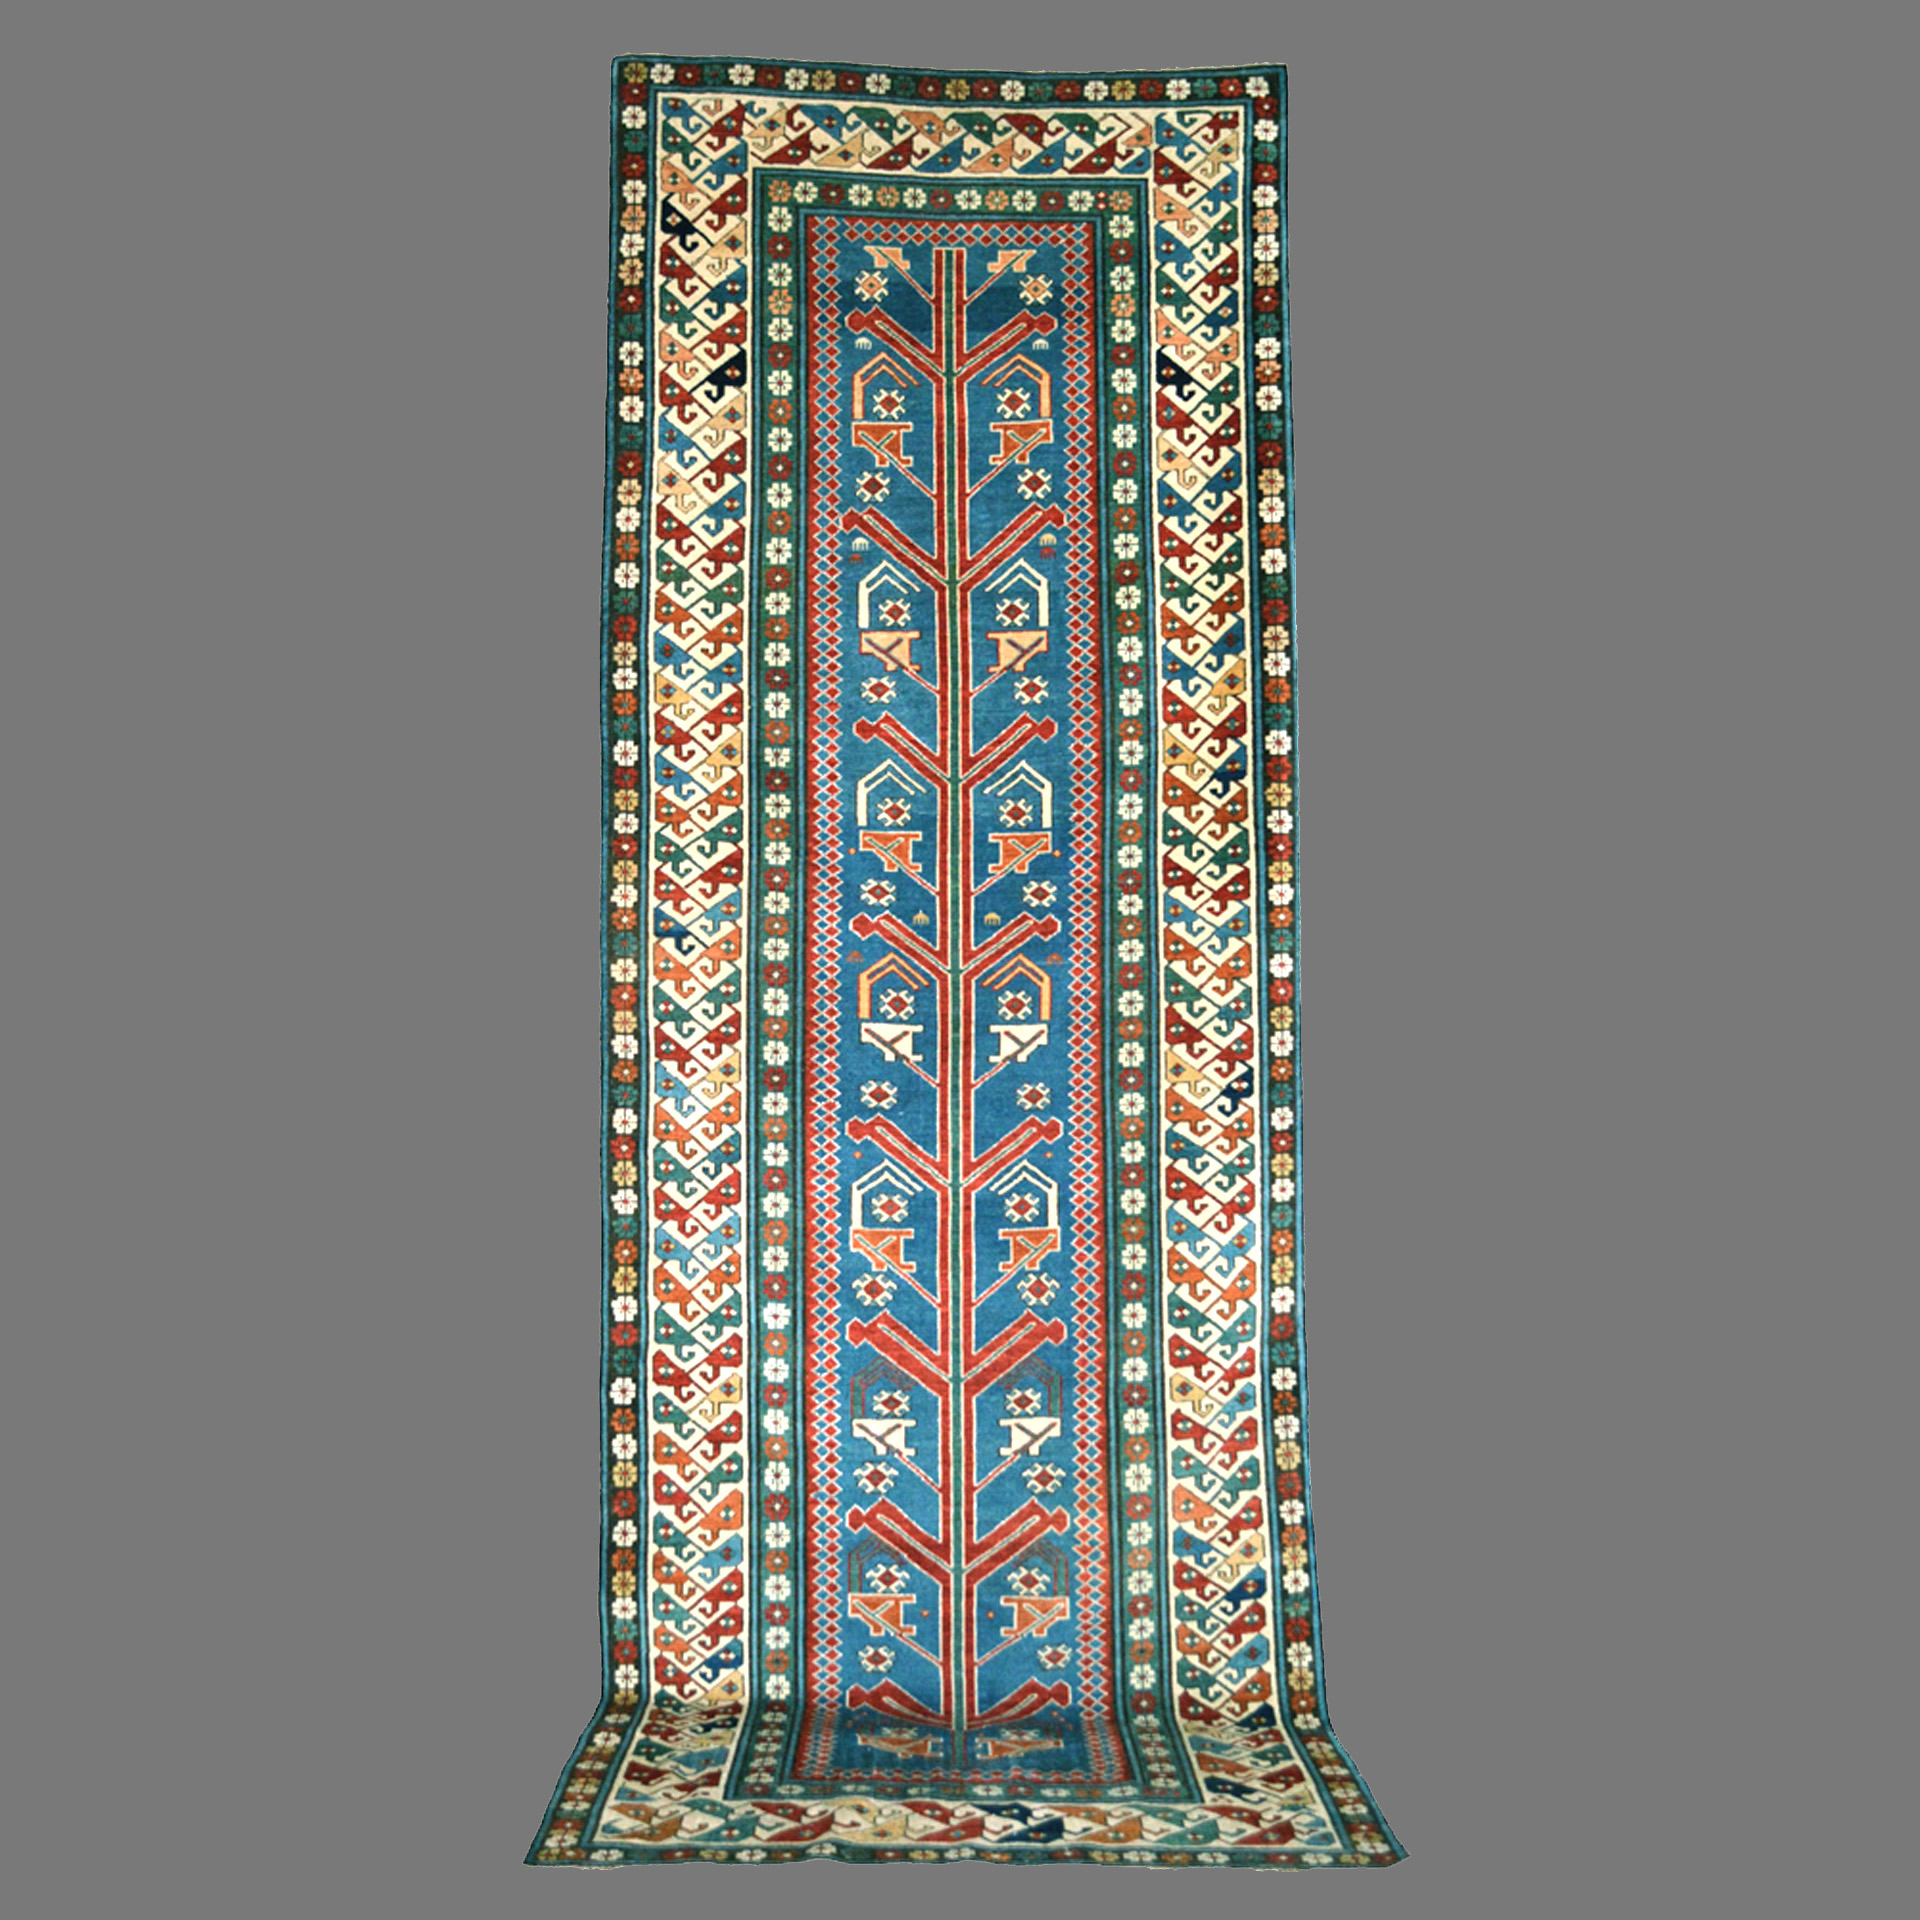 3.2 x 8.9 Antique Caucasian Shirvan long rug with stylized flowers or shrubs on a light blue field, circa 1870